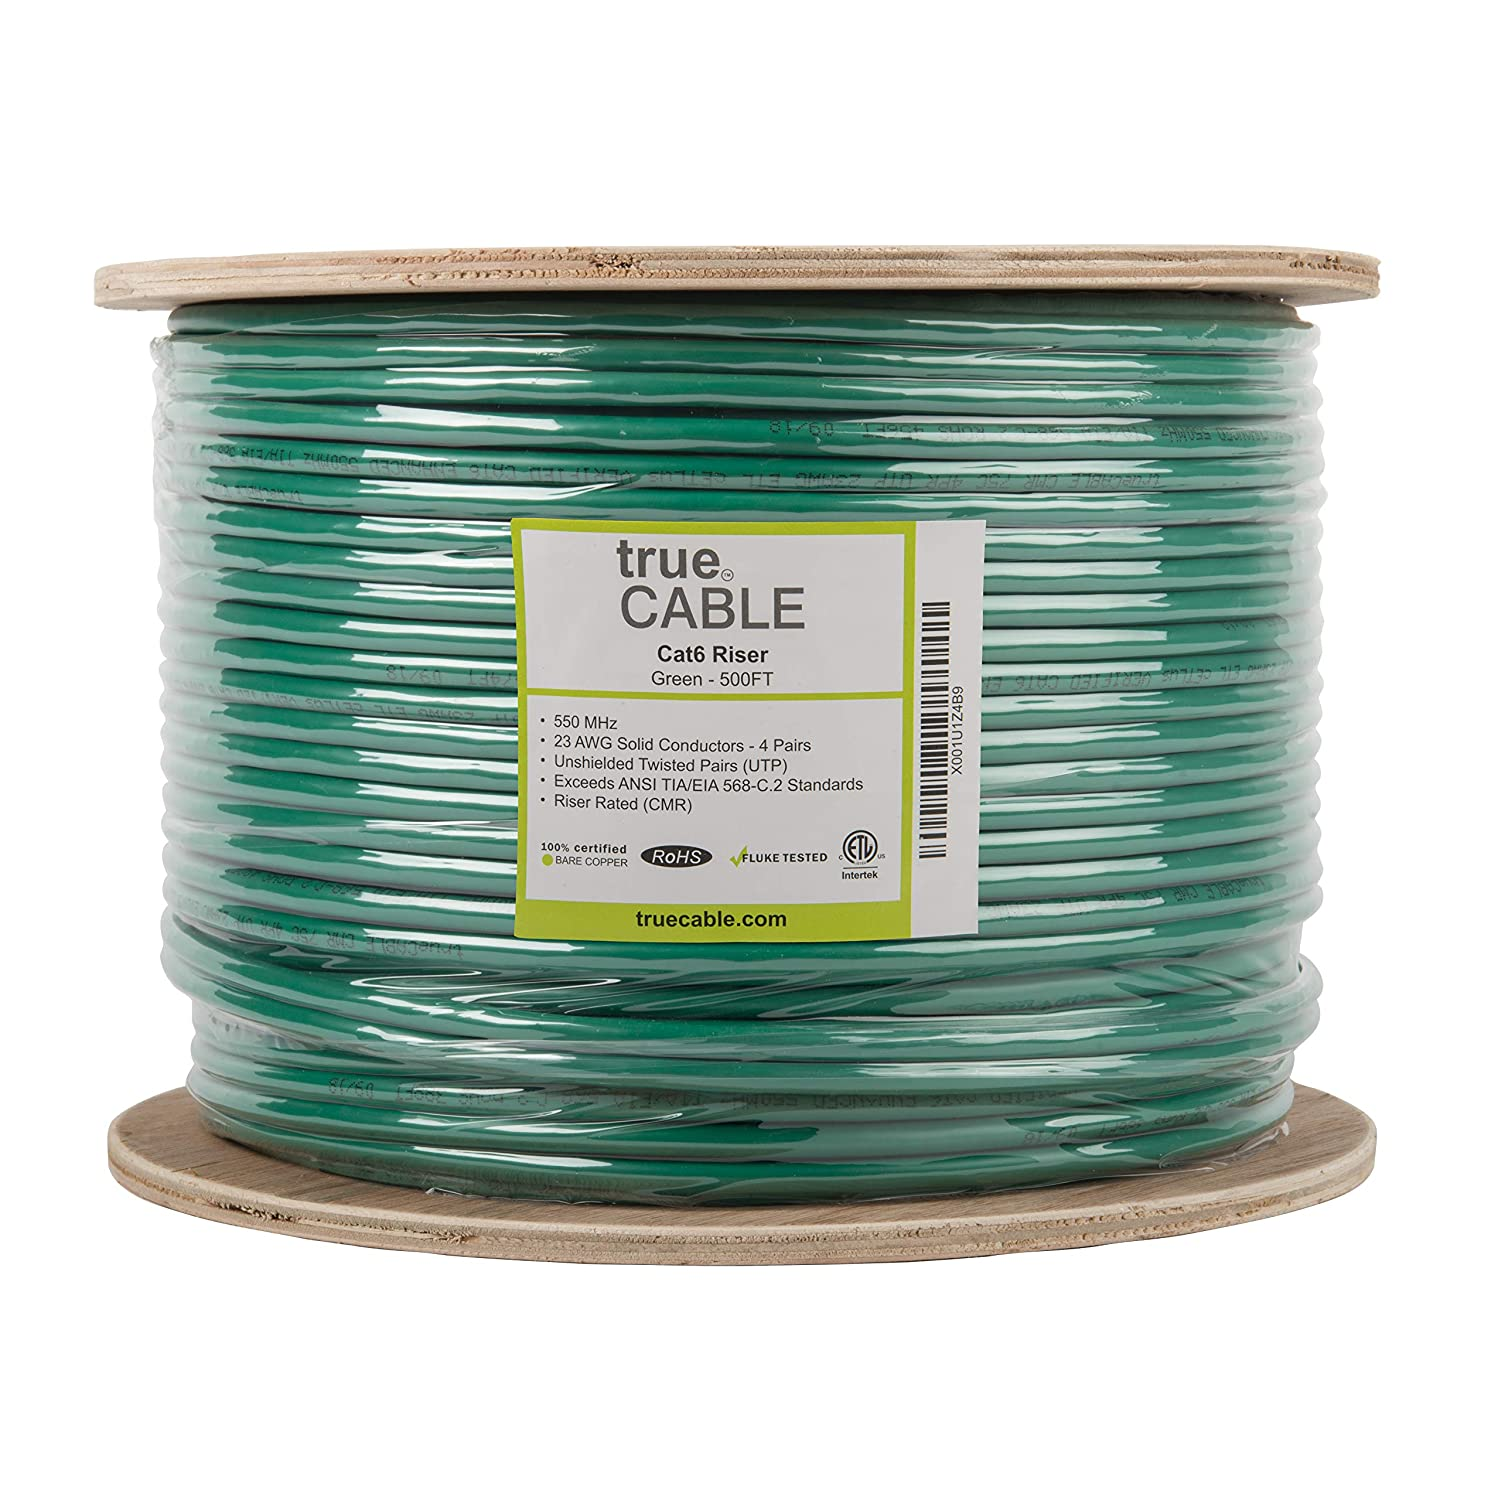 Bulk Ethernet Cable trueCABLE 6ECMRBLU/_500rl UTP CMR Unshielded Twisted Pair Blue ETL Listed Cat6 Riser 500ft 23AWG 4 Pair Solid Bare Copper 550MHz